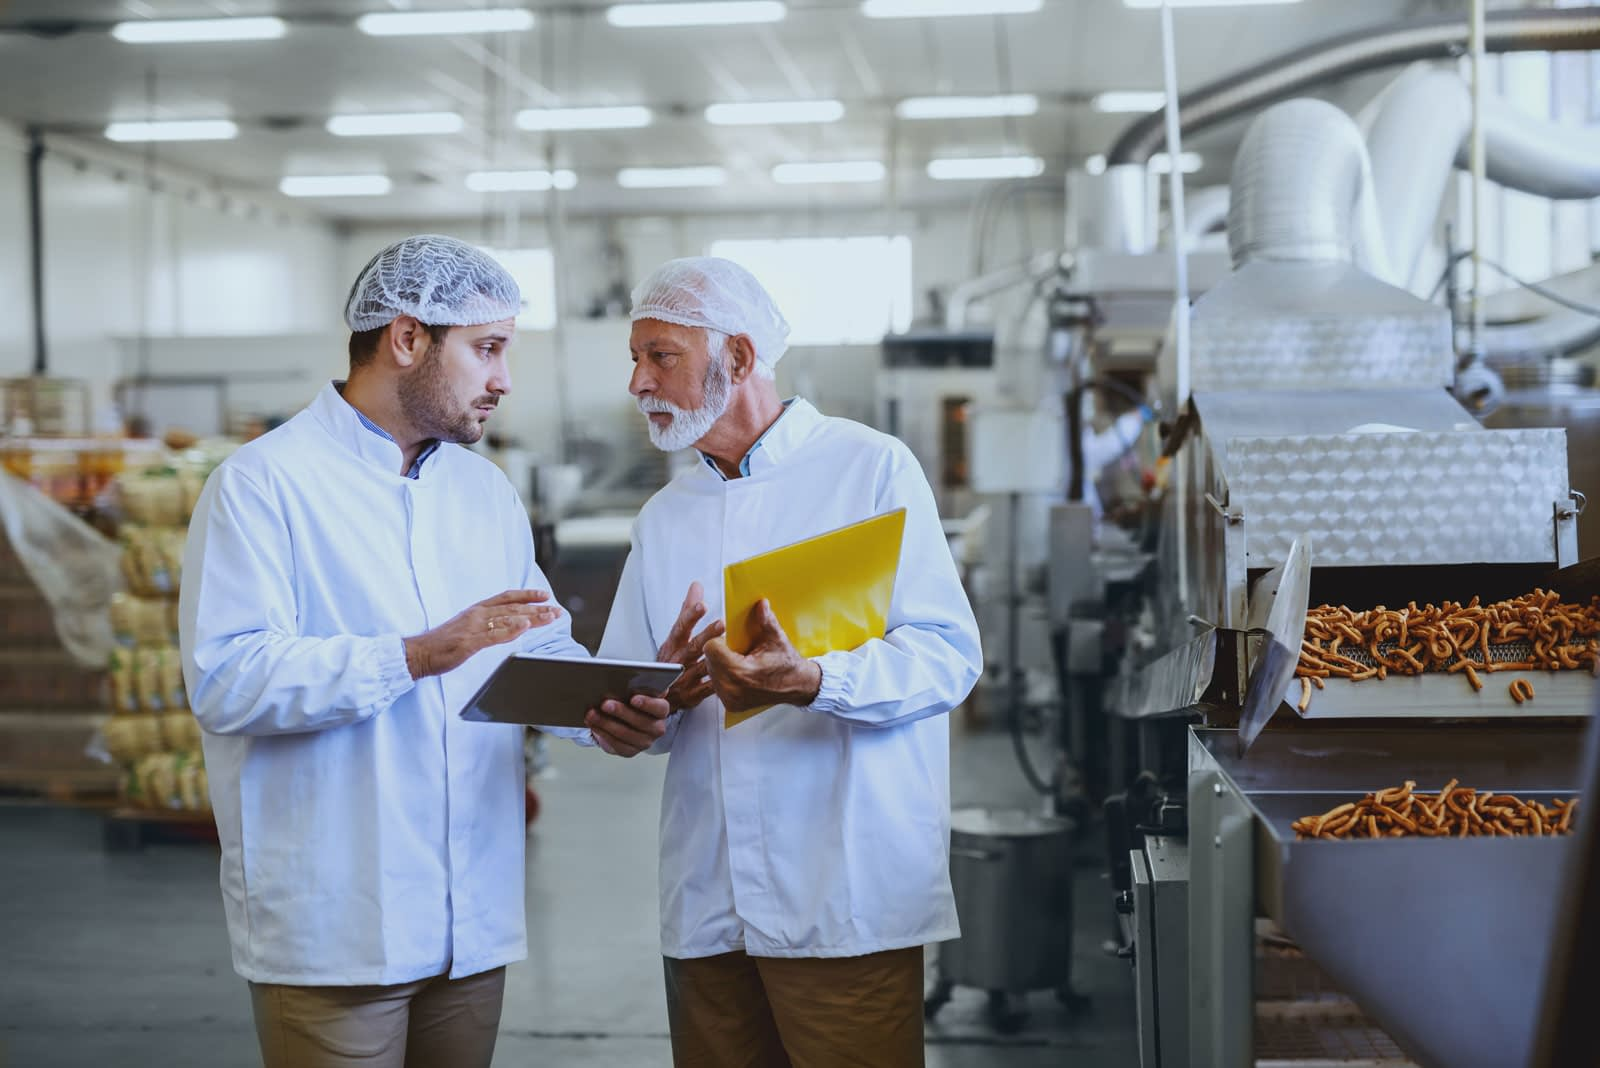 Two men in a food processing plant discussing operations next to a machine producing french fries